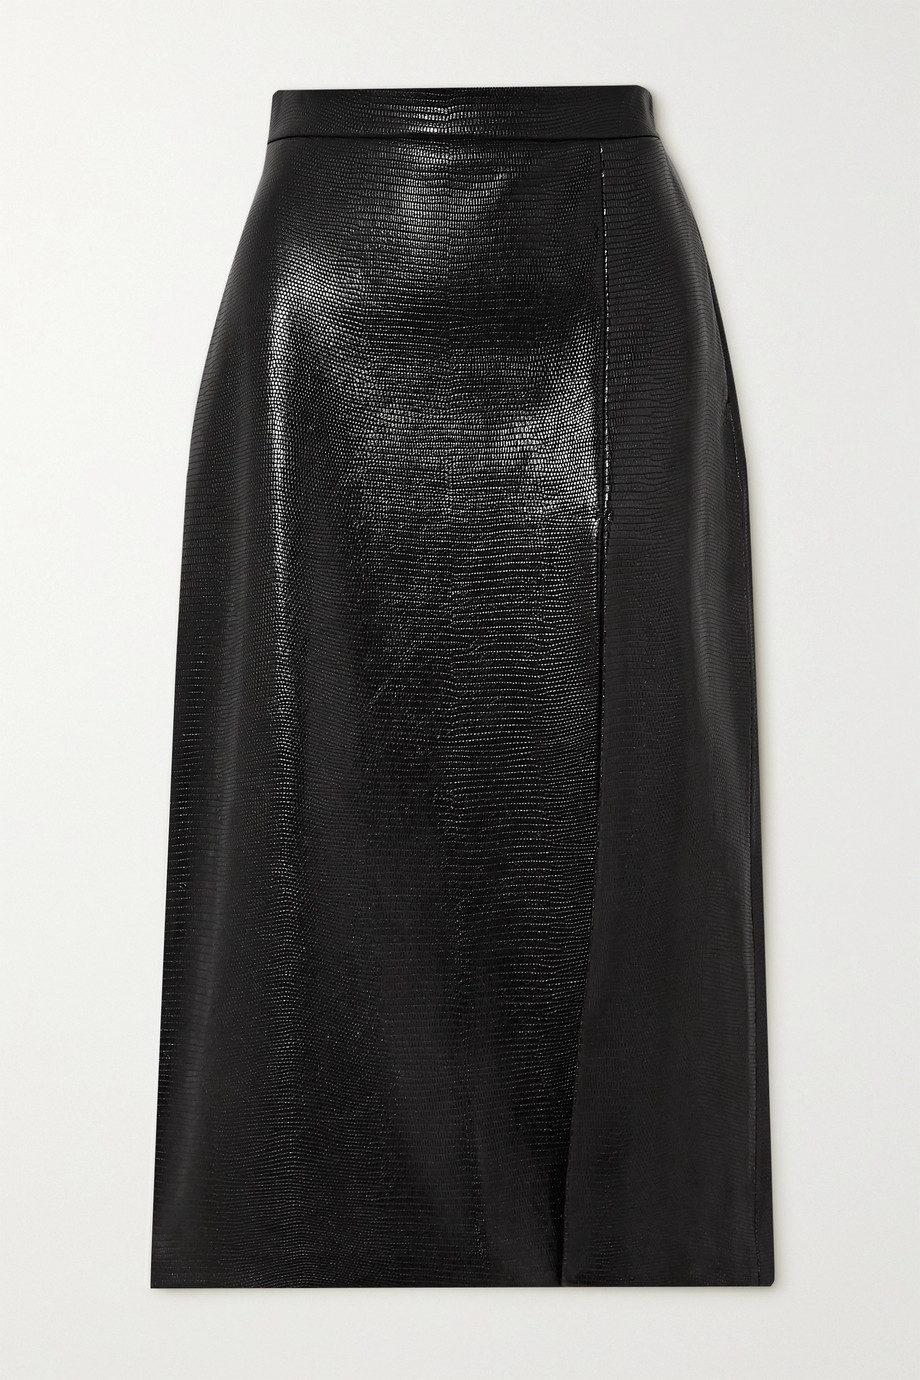 Gucci Lizard-effect leather midi skirt